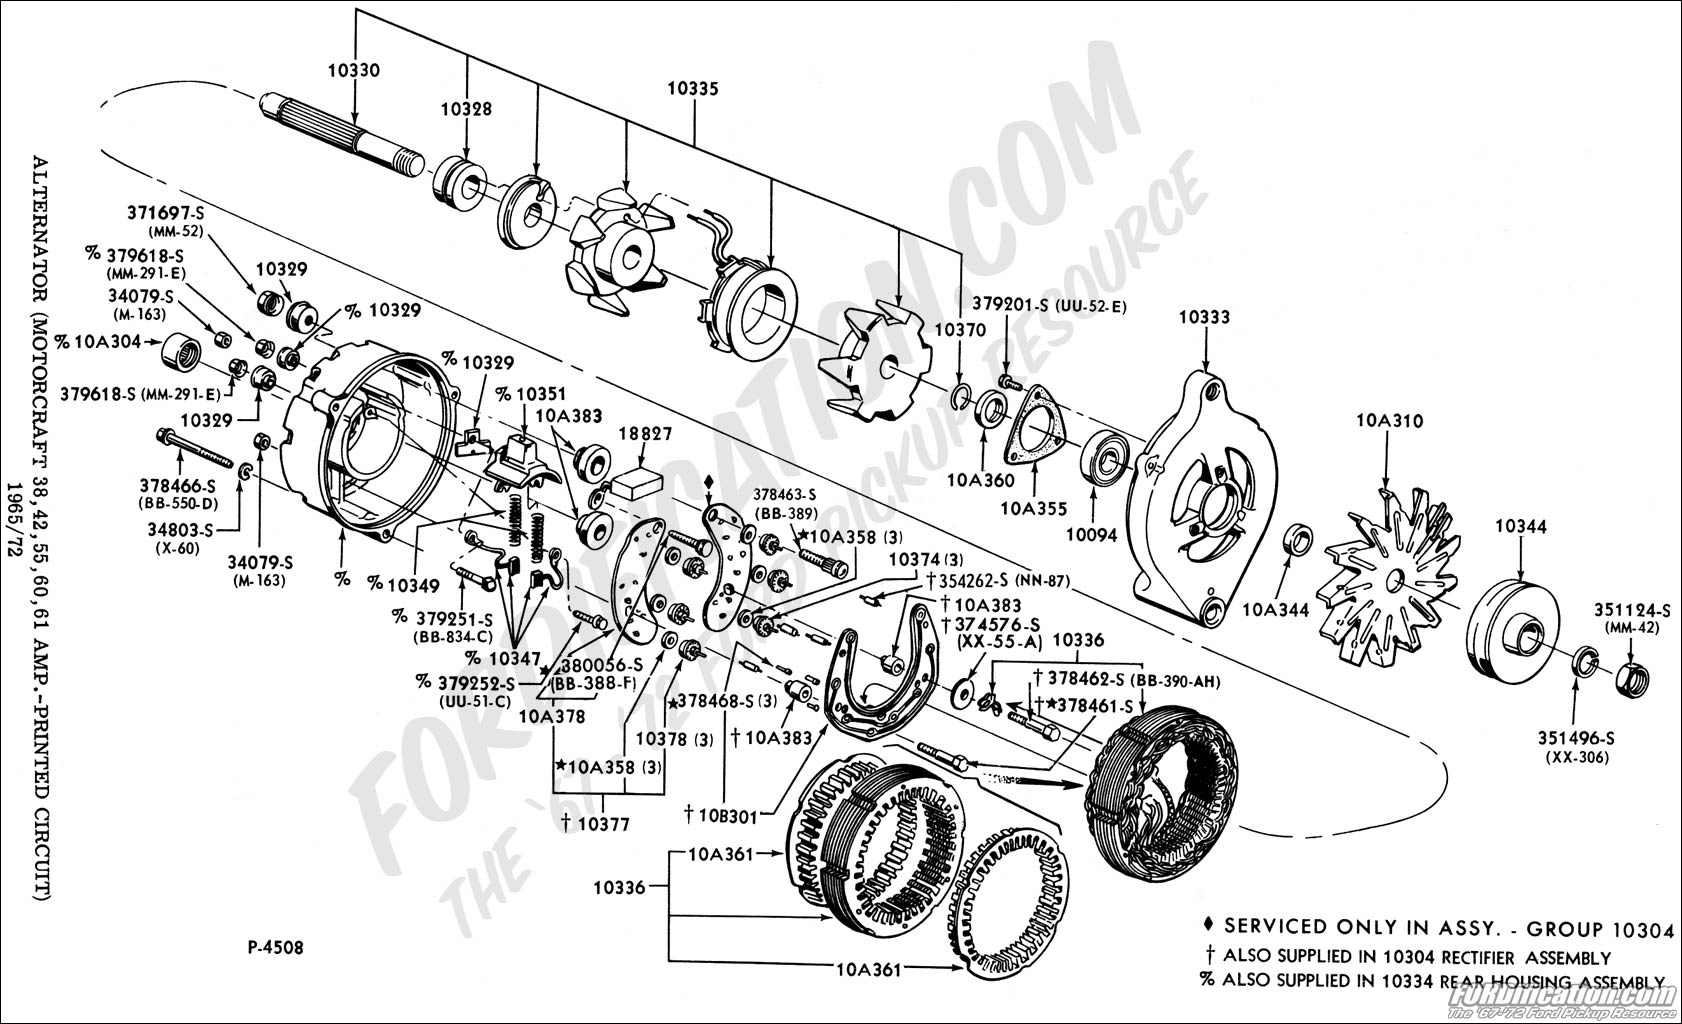 Ford Truck Technical Drawings And Schematics Section I F550 Wiring Diagram For Alt Electrical